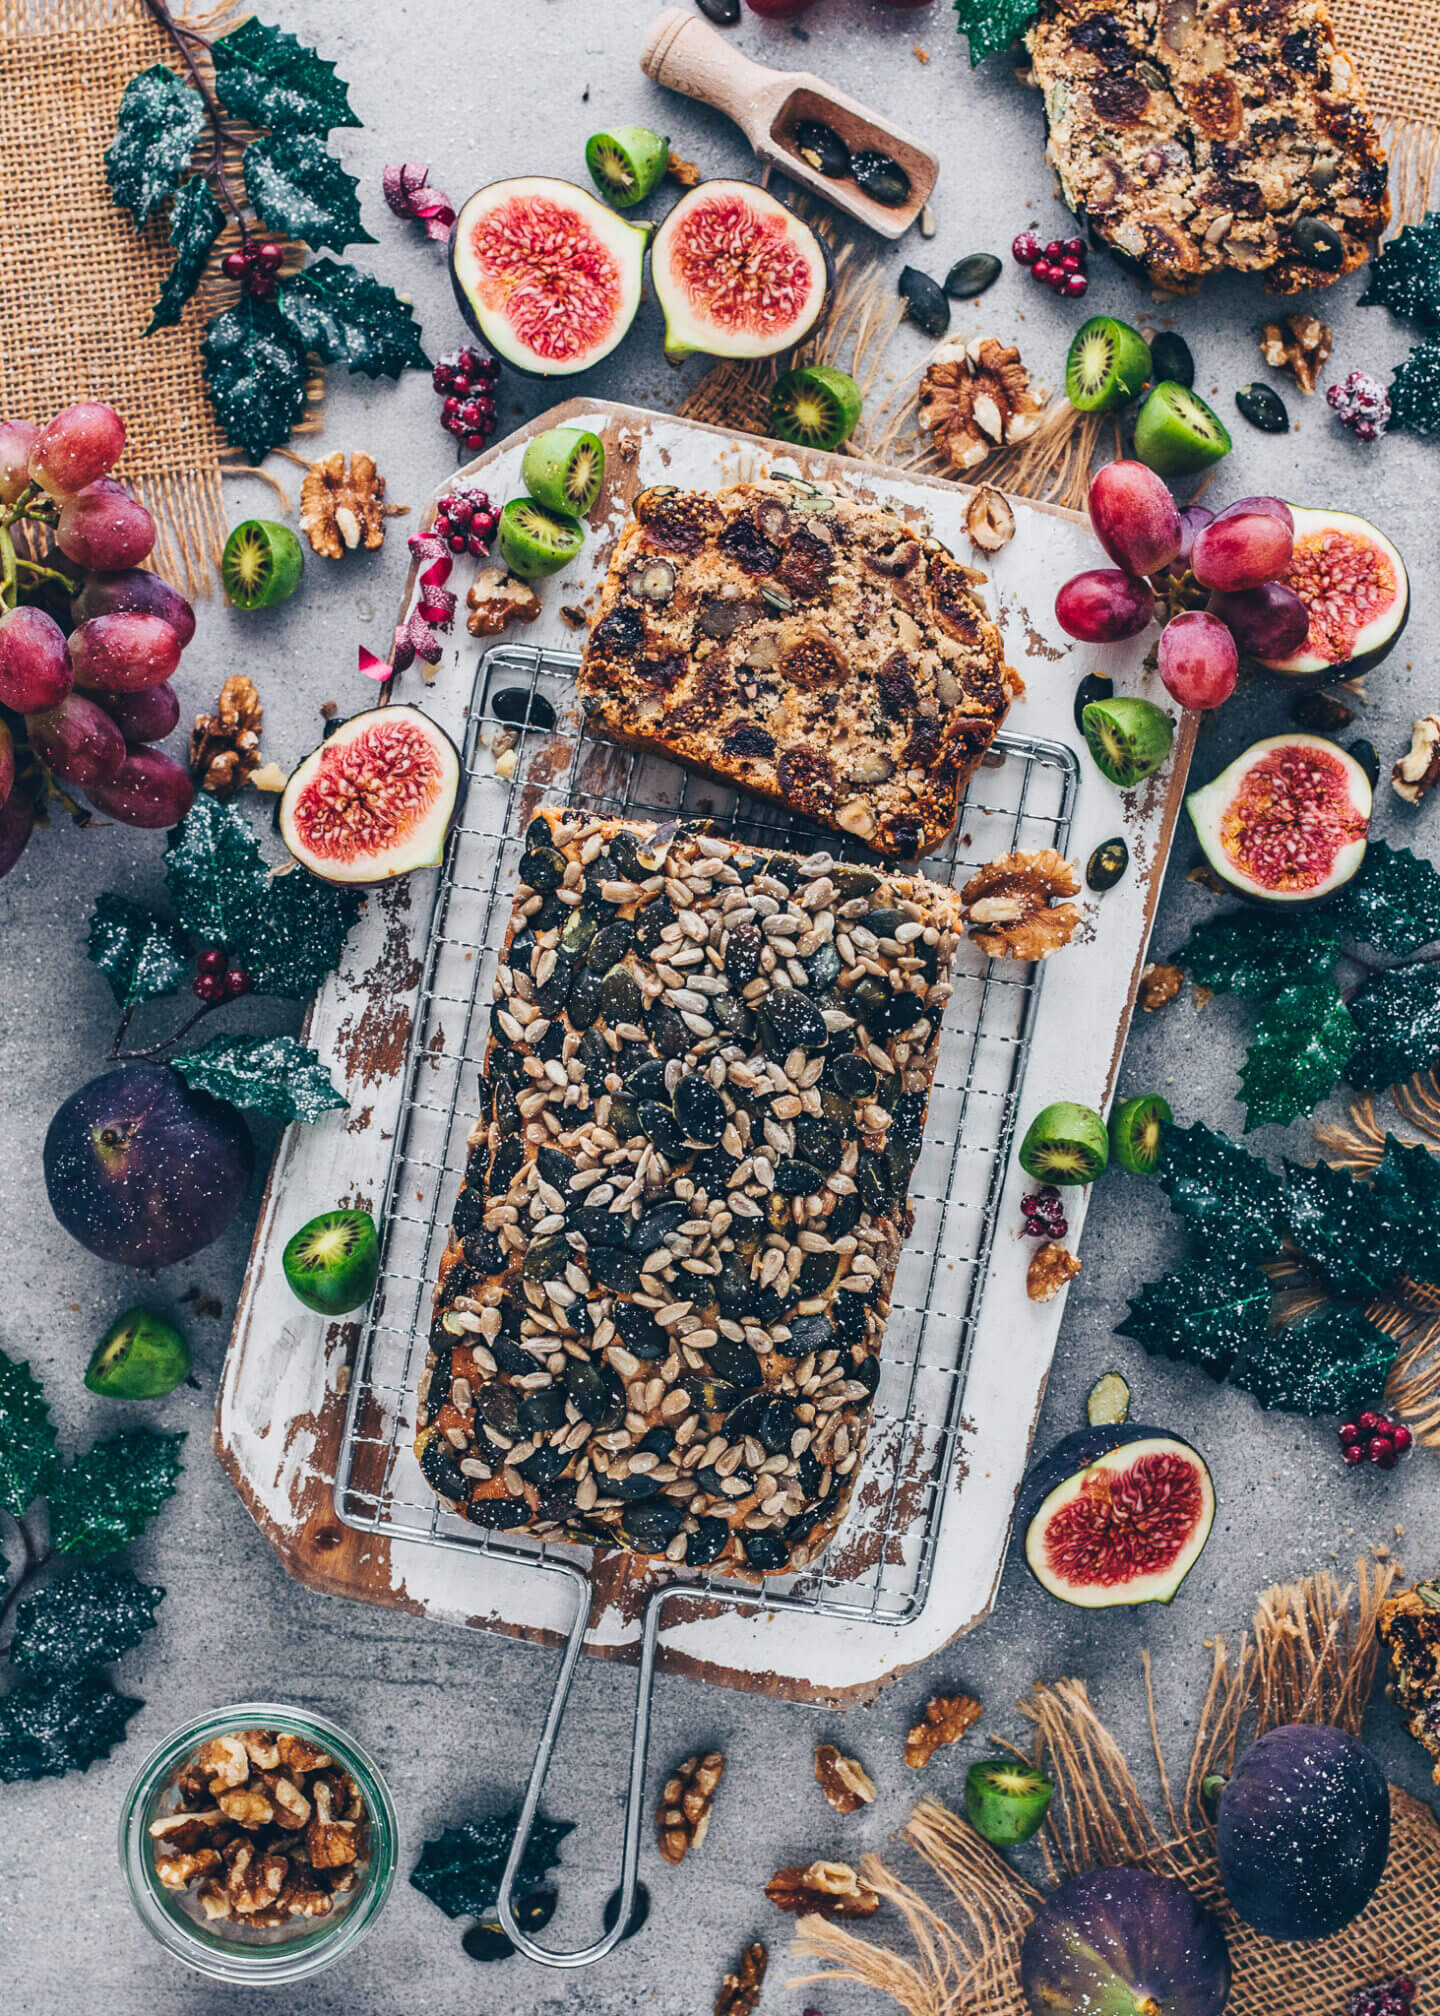 Fruit and Nut Bread with sunflower seeds and pepitas